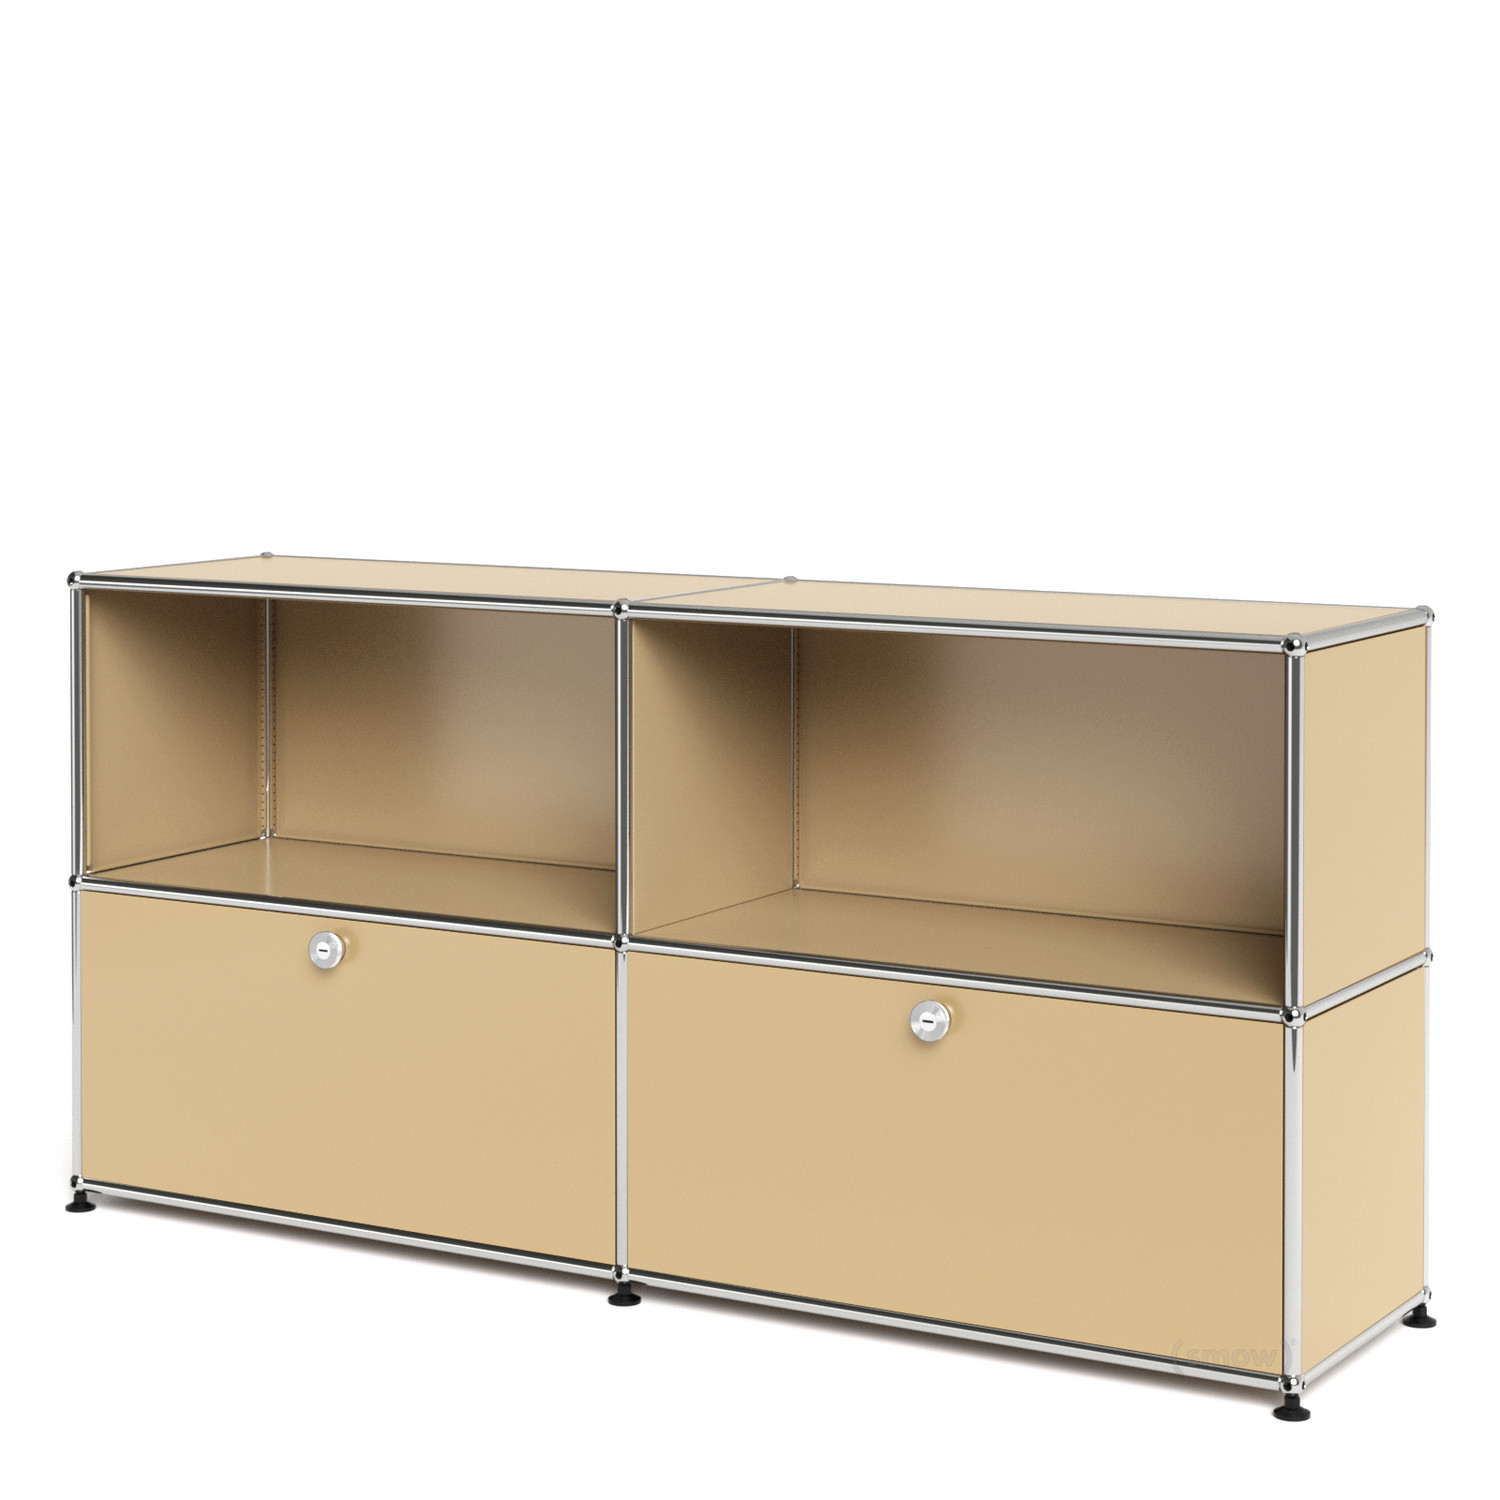 usm haller sideboard l with 2 drop down doors usm beige. Black Bedroom Furniture Sets. Home Design Ideas